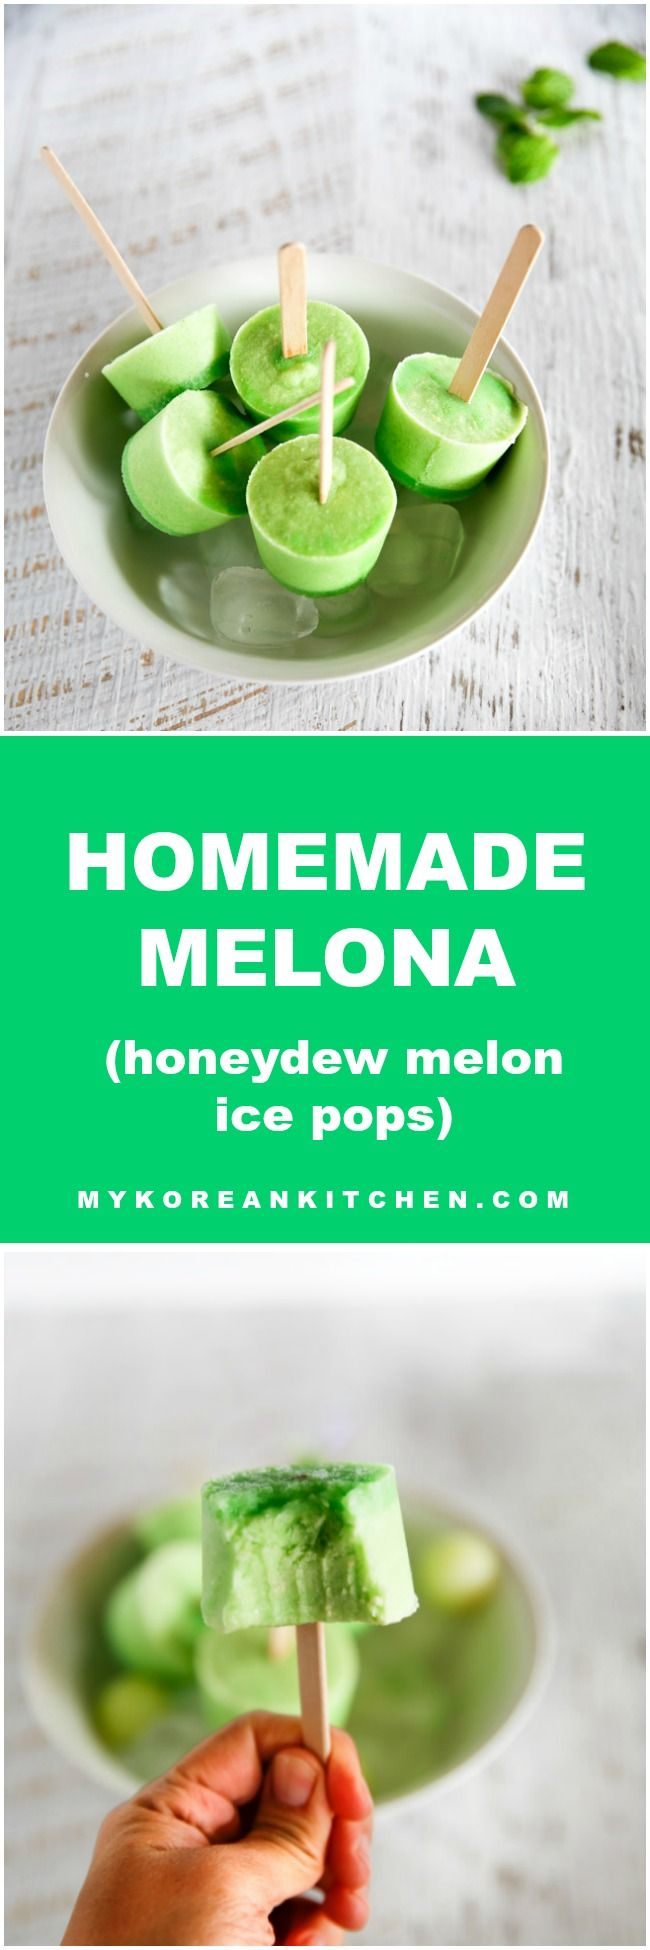 Make a popular Korean popsicle – Melona bar from your home! It takes less than 10 minutes to assemble! Easy & delicious! | MyKoreanKitchen.com